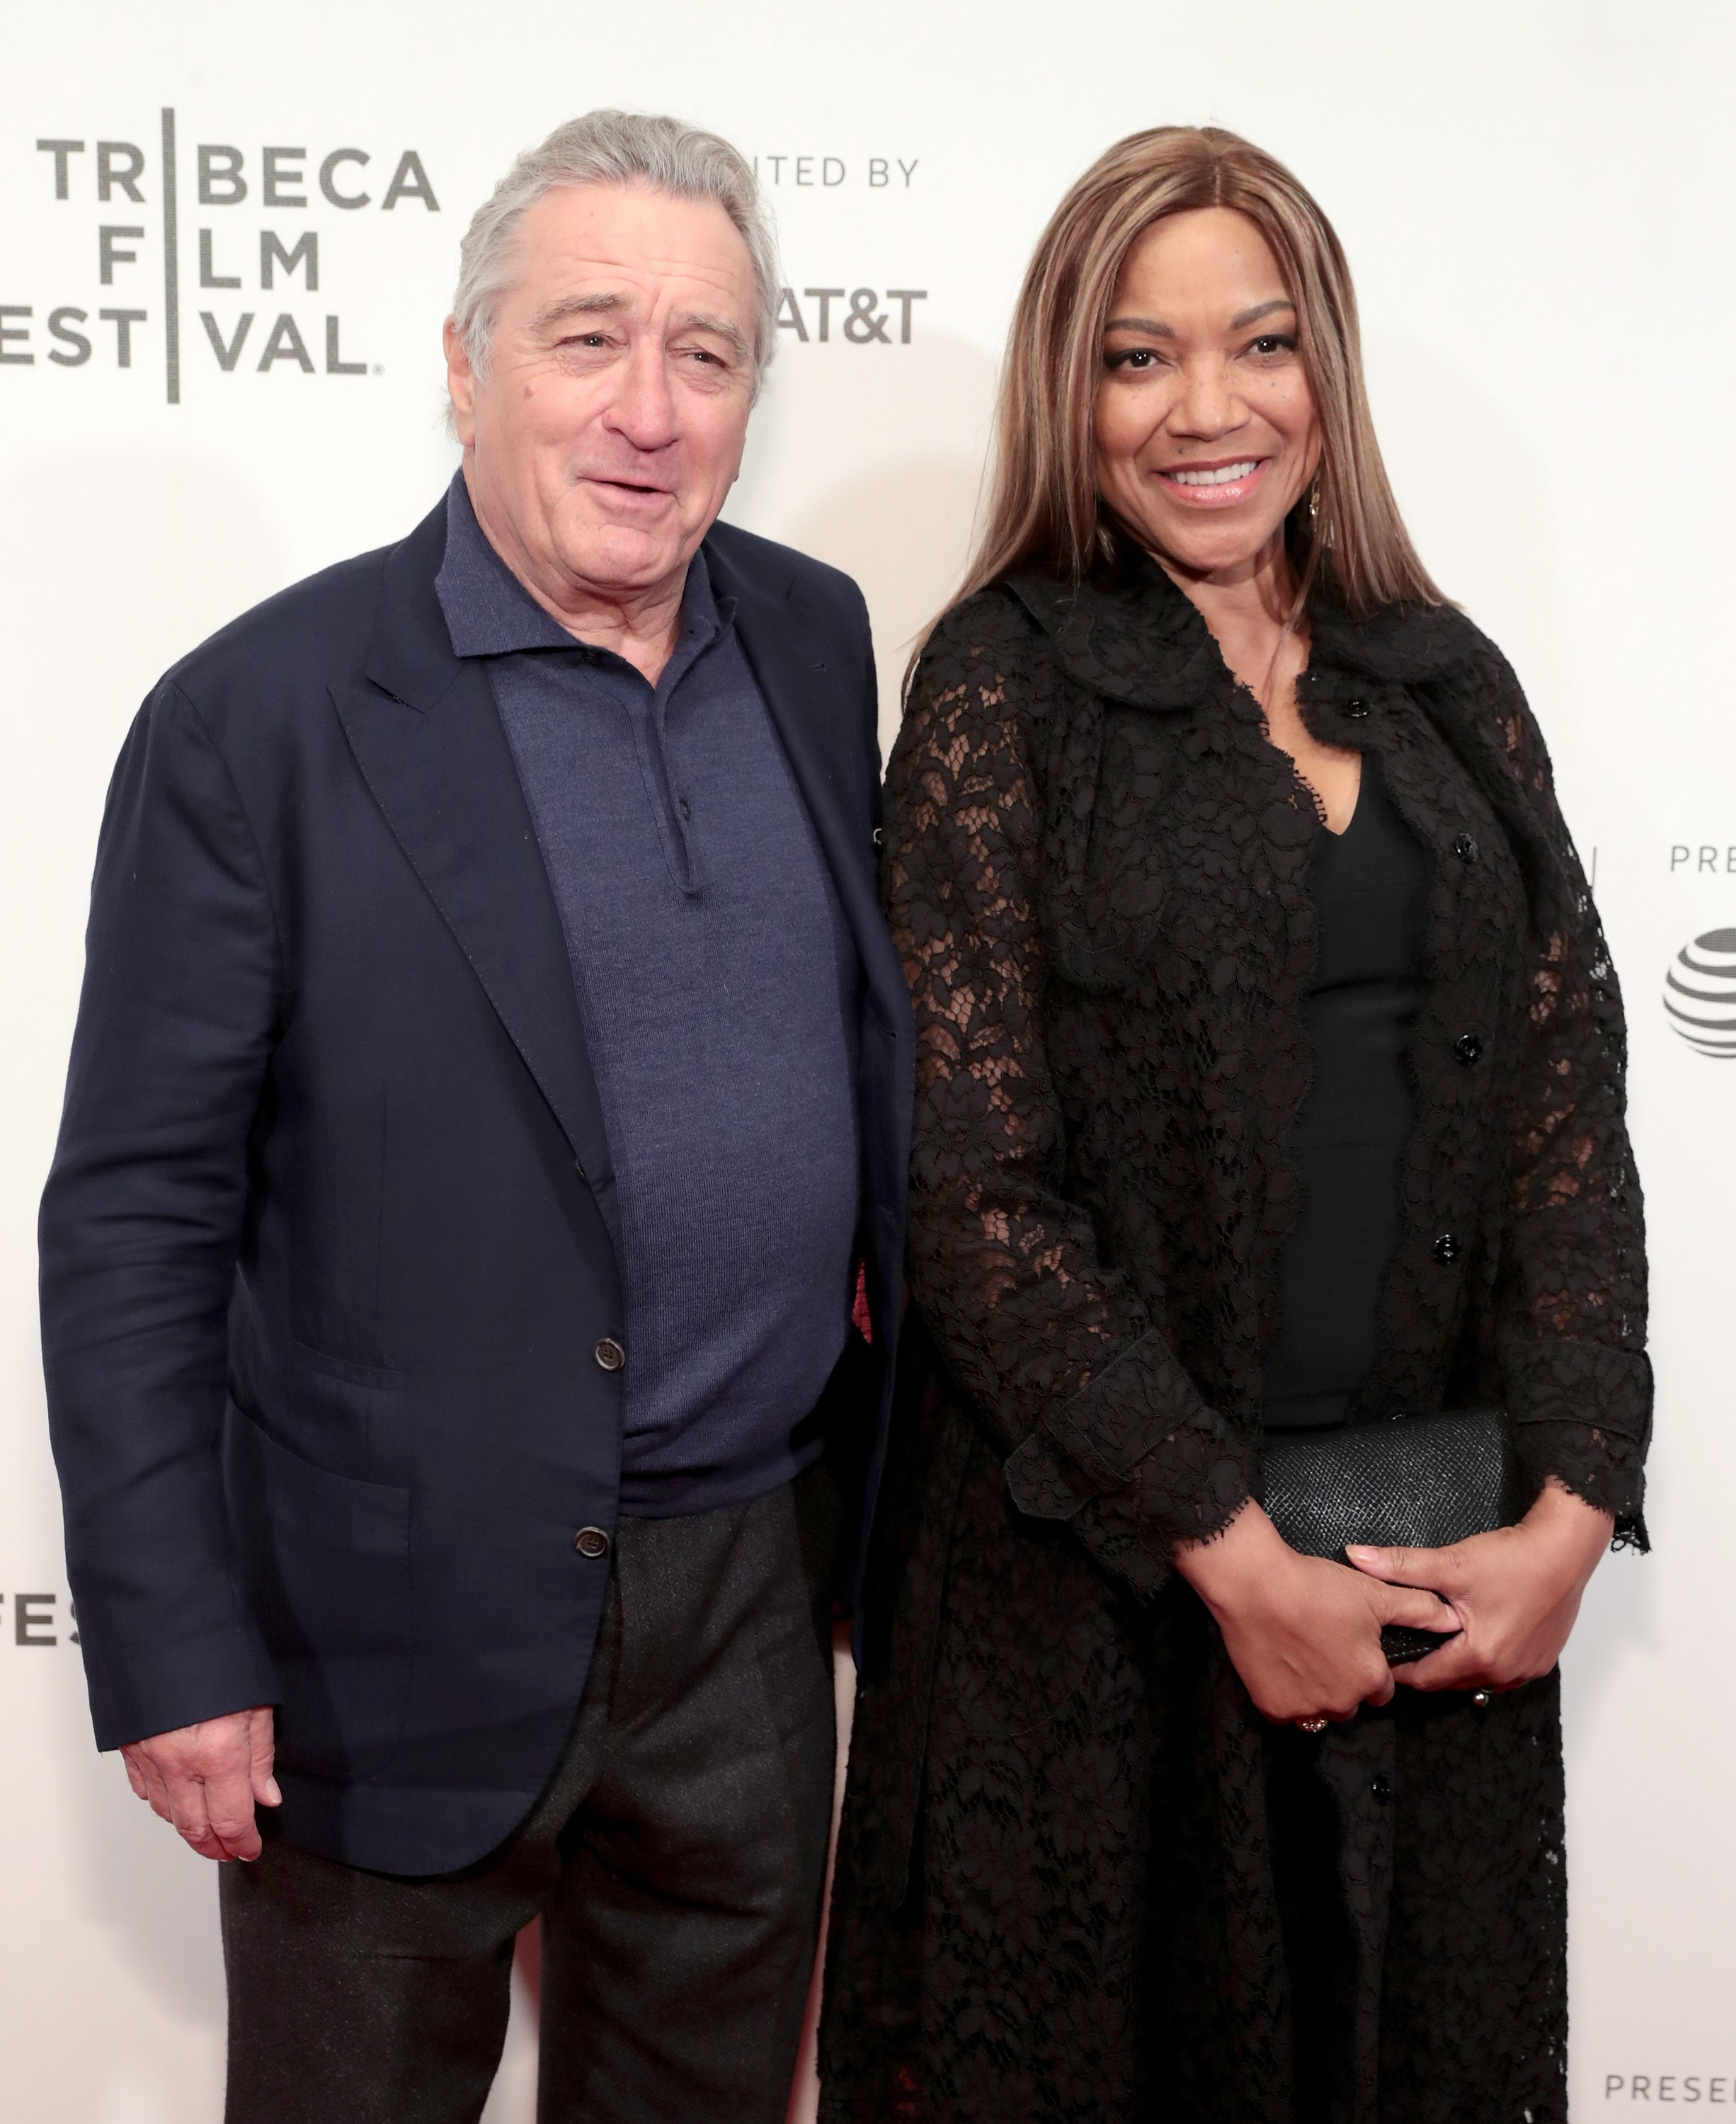 Roberto De Niro and Grace Hightower posing for a picture | Photo: Getty Images